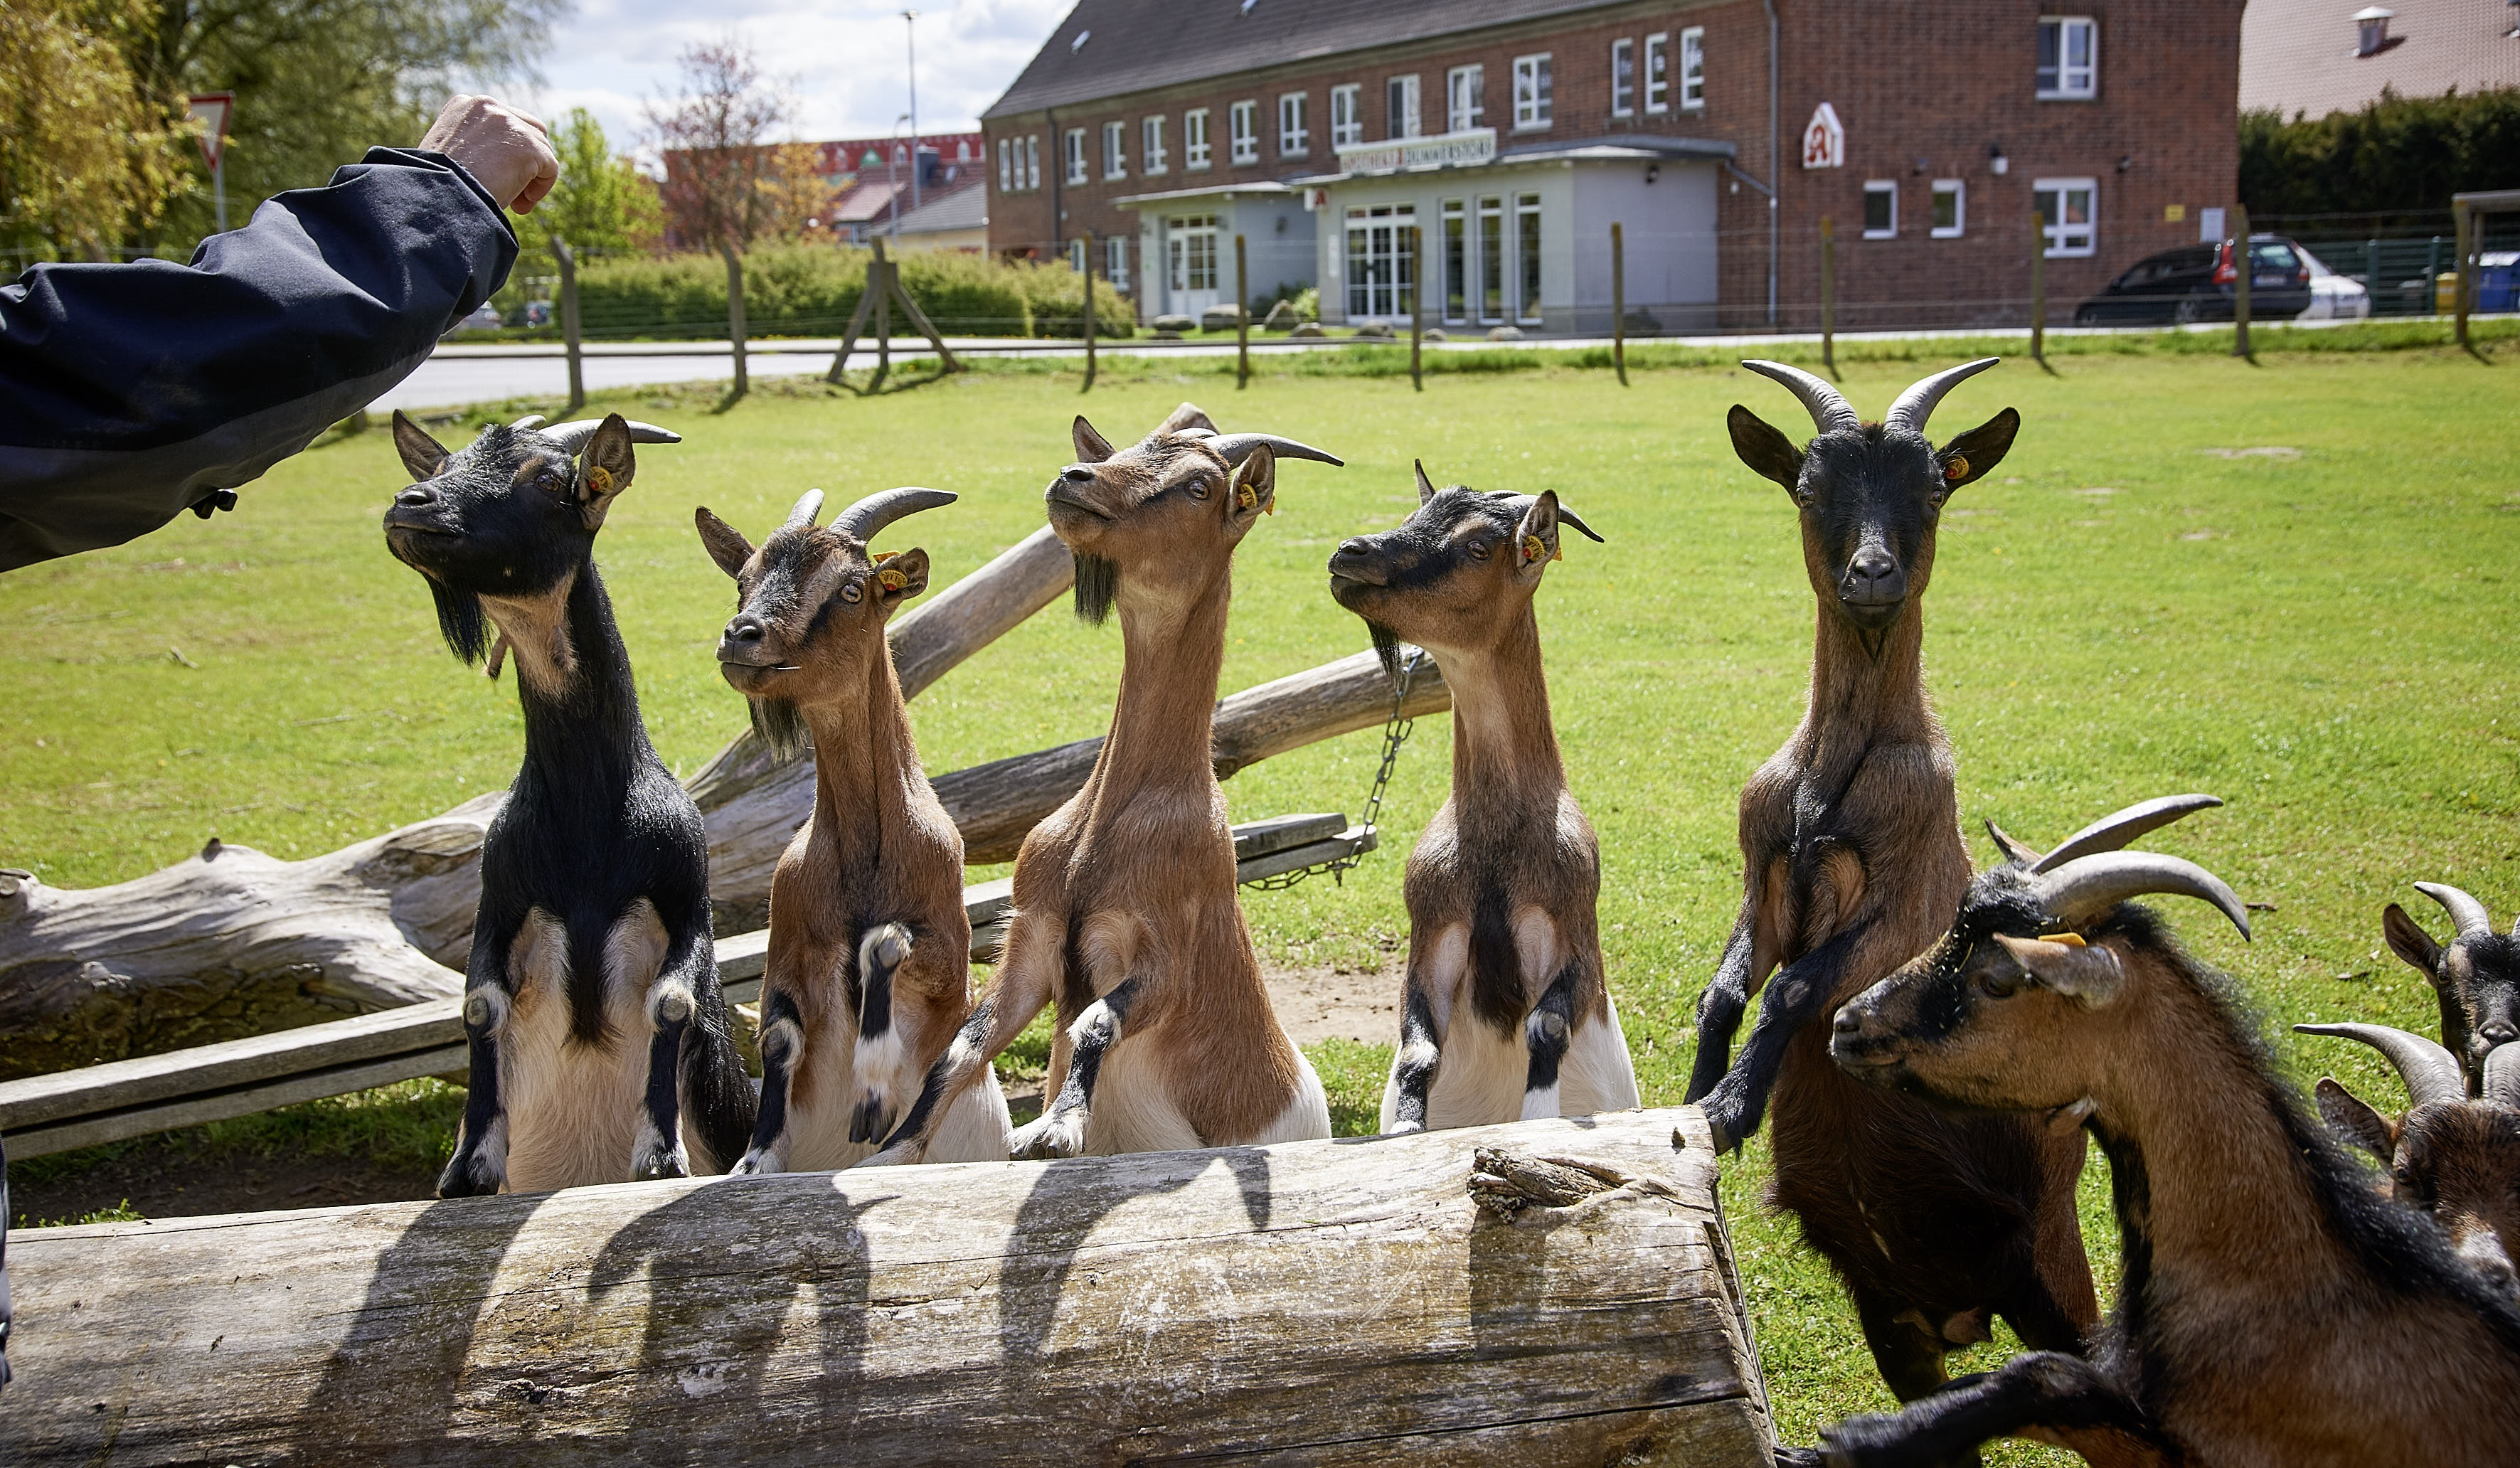 Are Goats Smart? Reading Goats' Minds